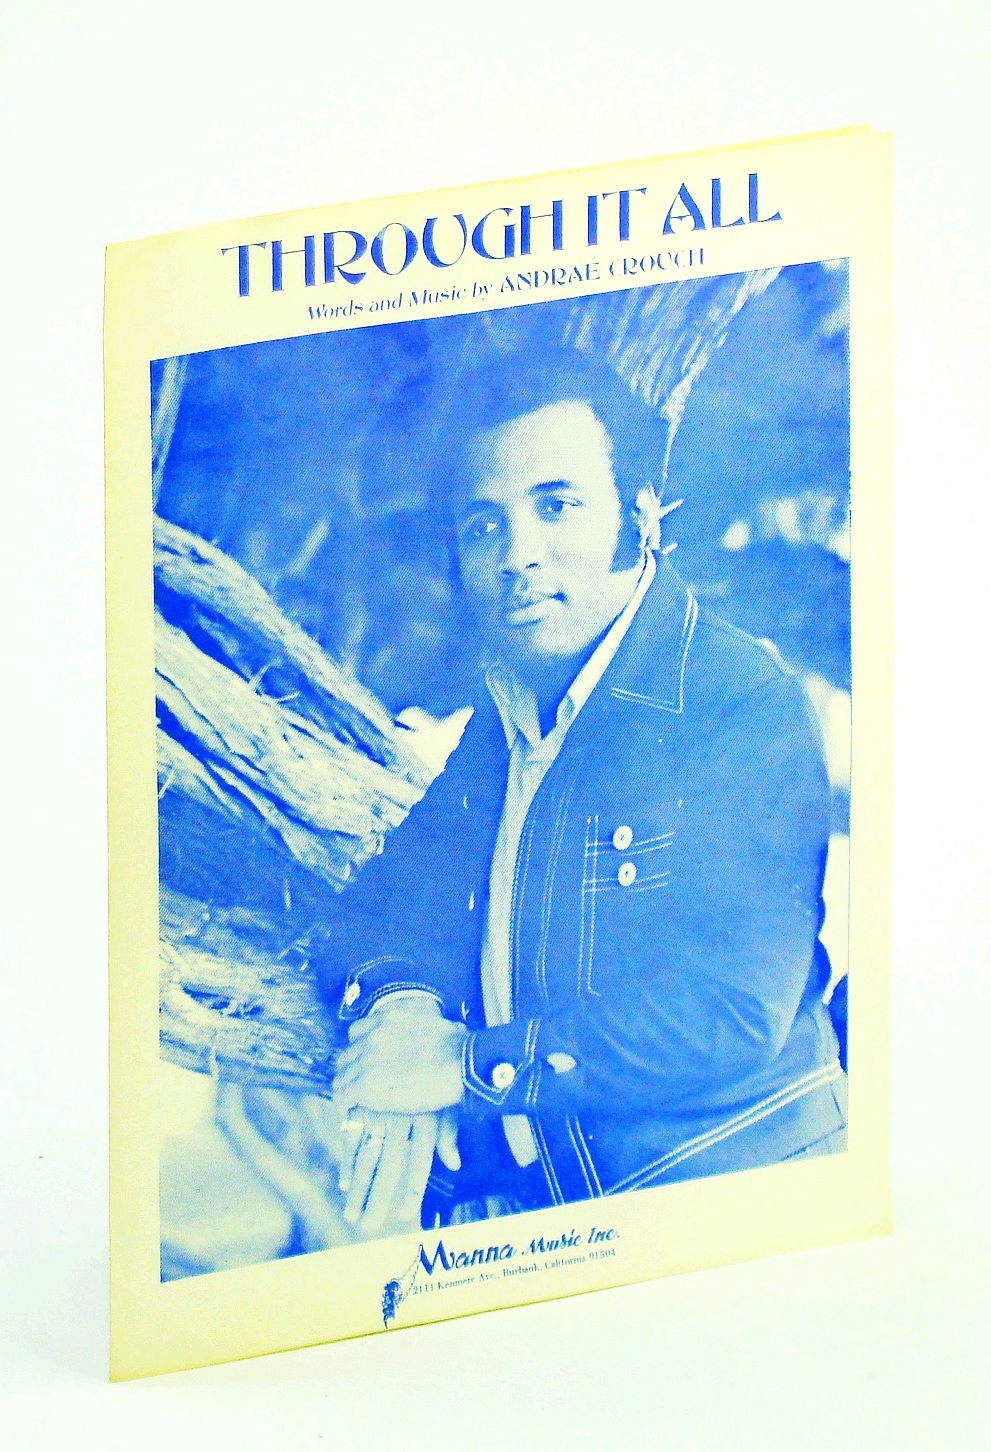 Image for ANDRAE CROUCH THROUGH IT ALL 1971 SHEET MUSIC shhet music FOLDER 18